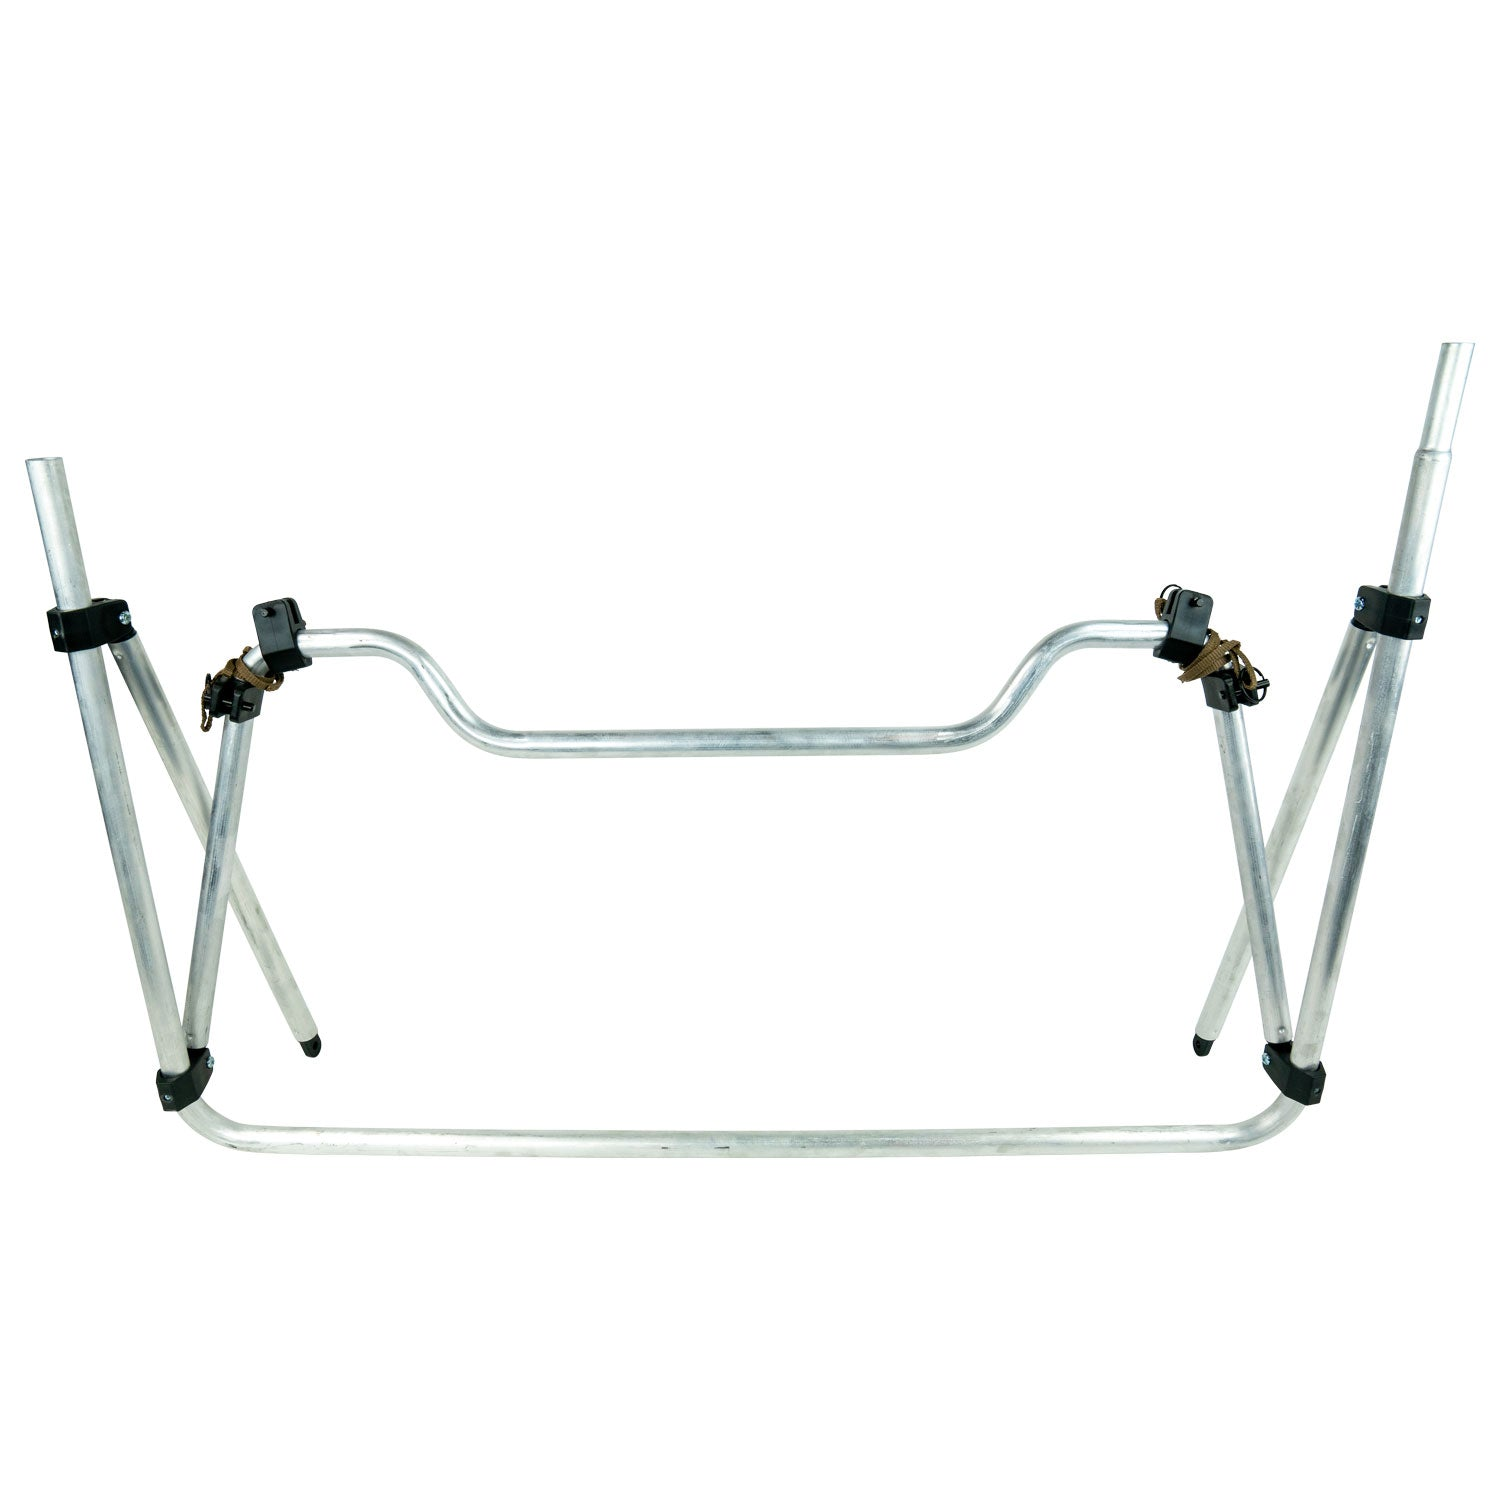 Dead Zone / Flight Series Blind Frame Part - Base Frame w/ Back Rest Support